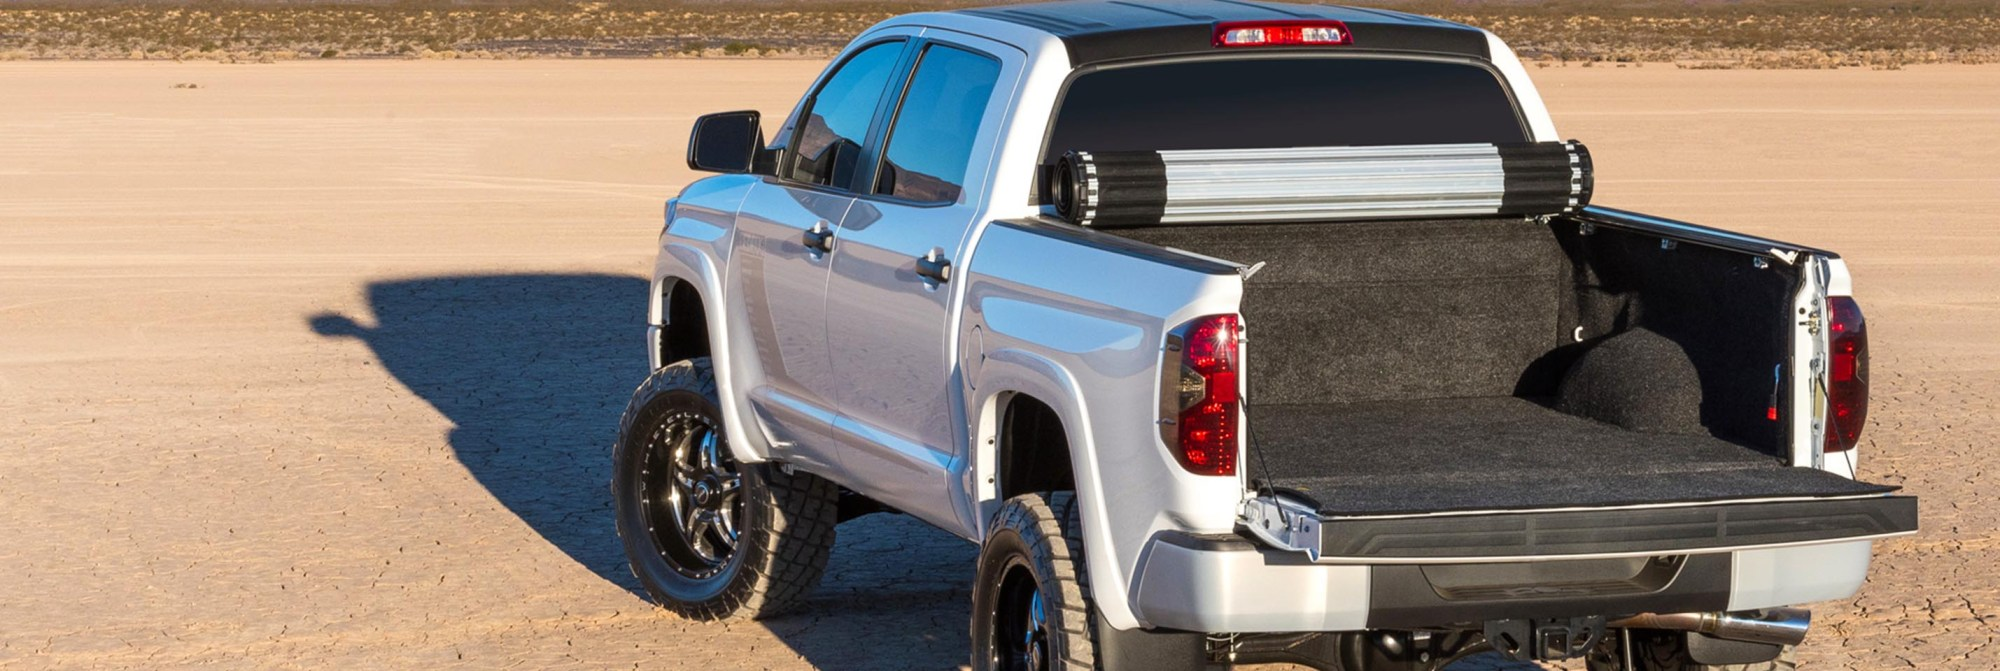 hight resolution of take a look at top customer picks for toyota tundra tonneau covers read customer reviews and discover the most popular opening styles and brands for your